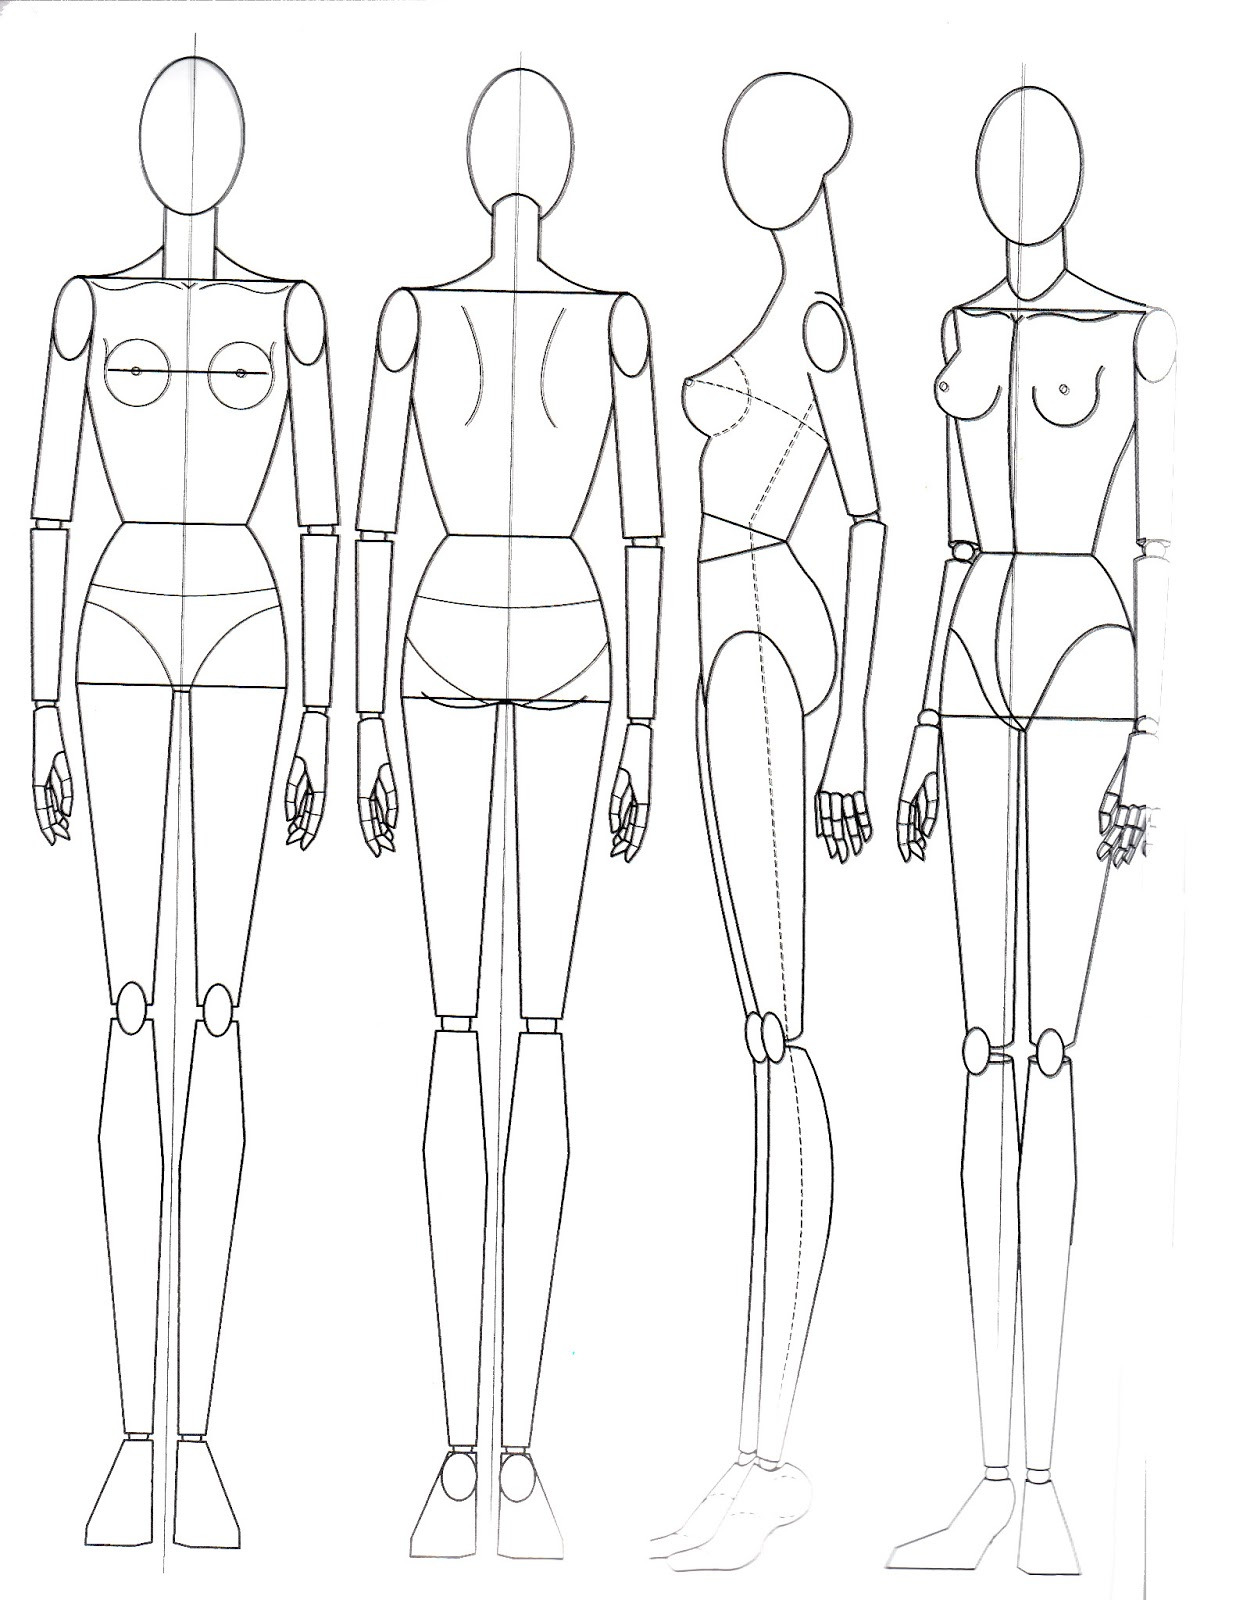 Paper doll school the basics of anatomy for Fashion designing templates free download